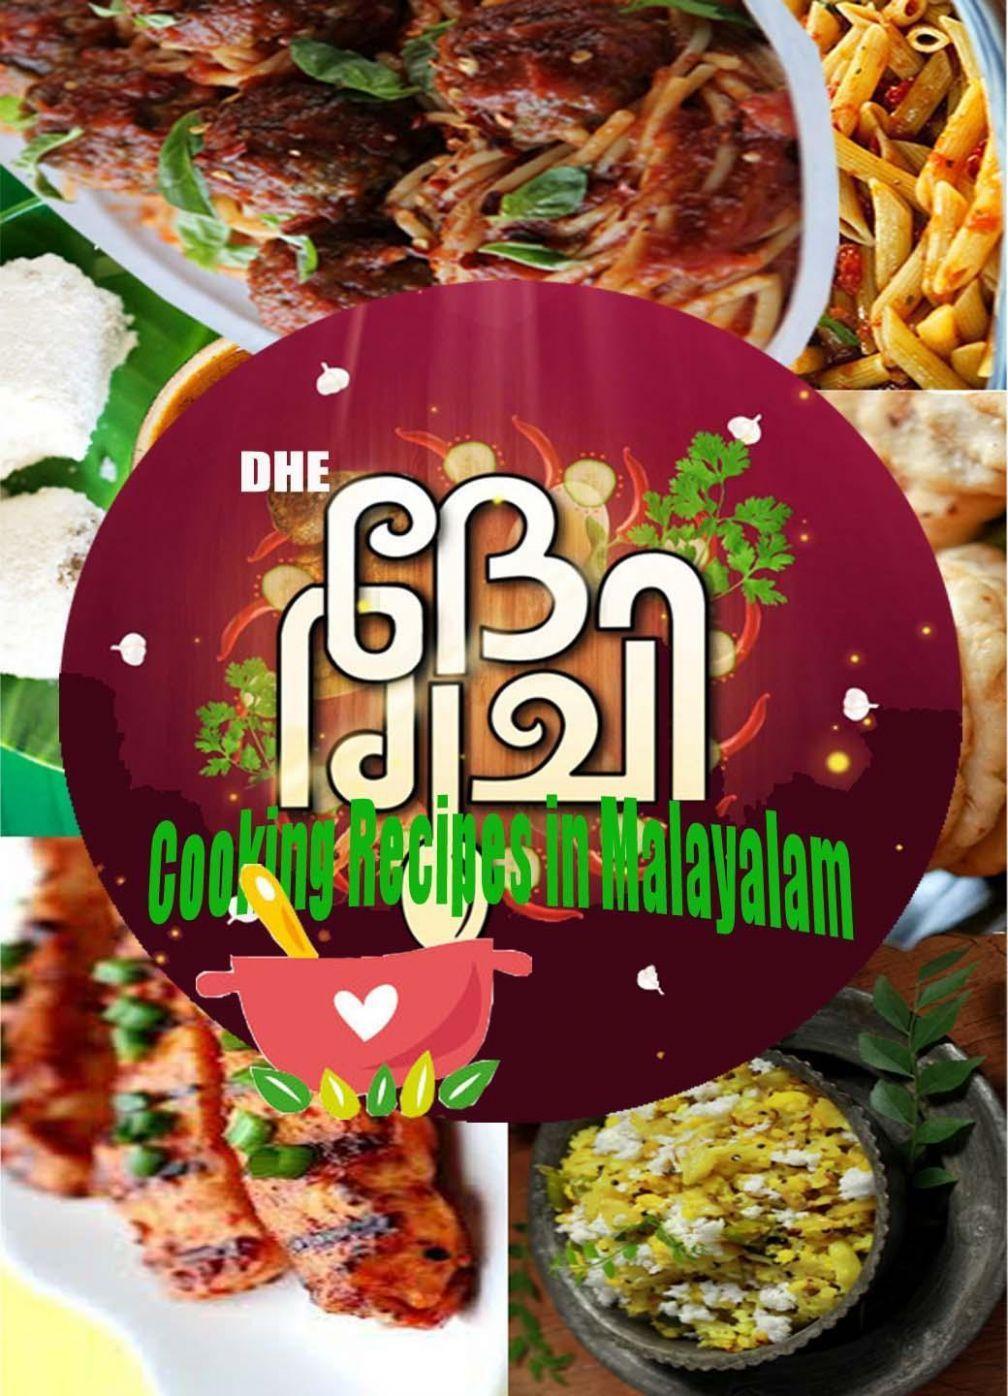 DHE RUCHI Cooking Recipes for Android - APK Download - Breakfast Recipes In Malayalam